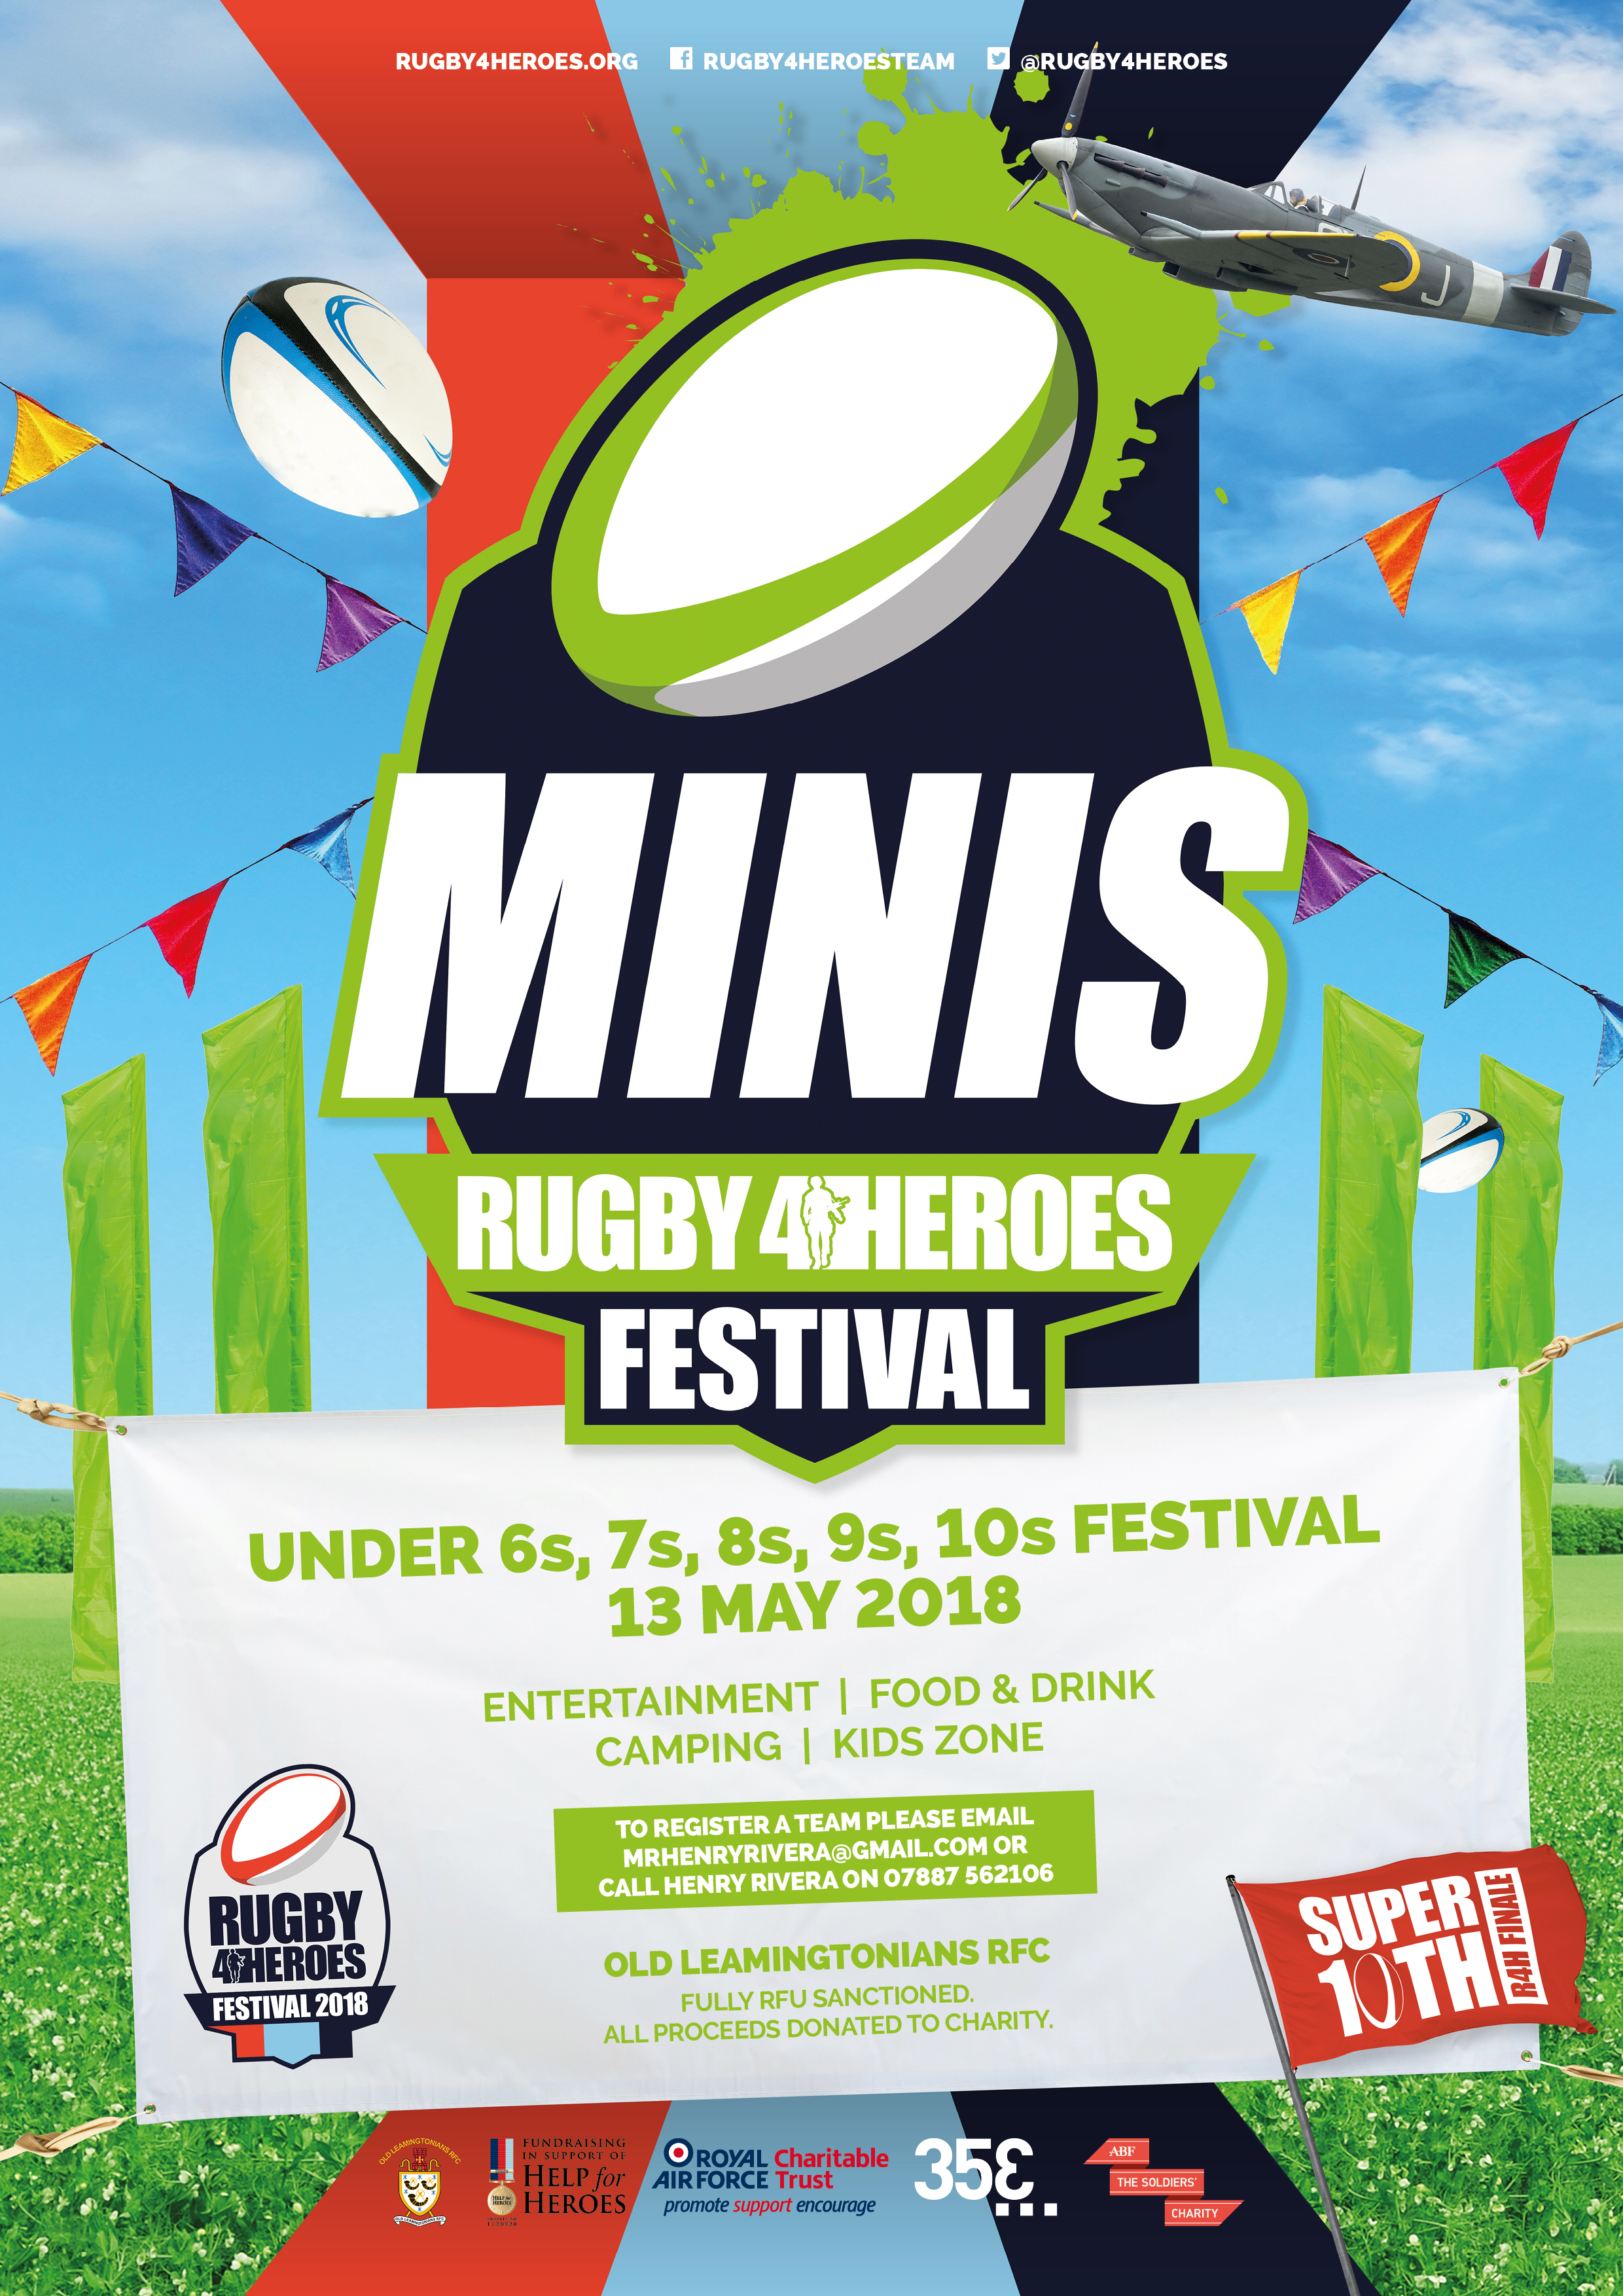 304564_Rugby4Heroes_Posters_A4_Minis